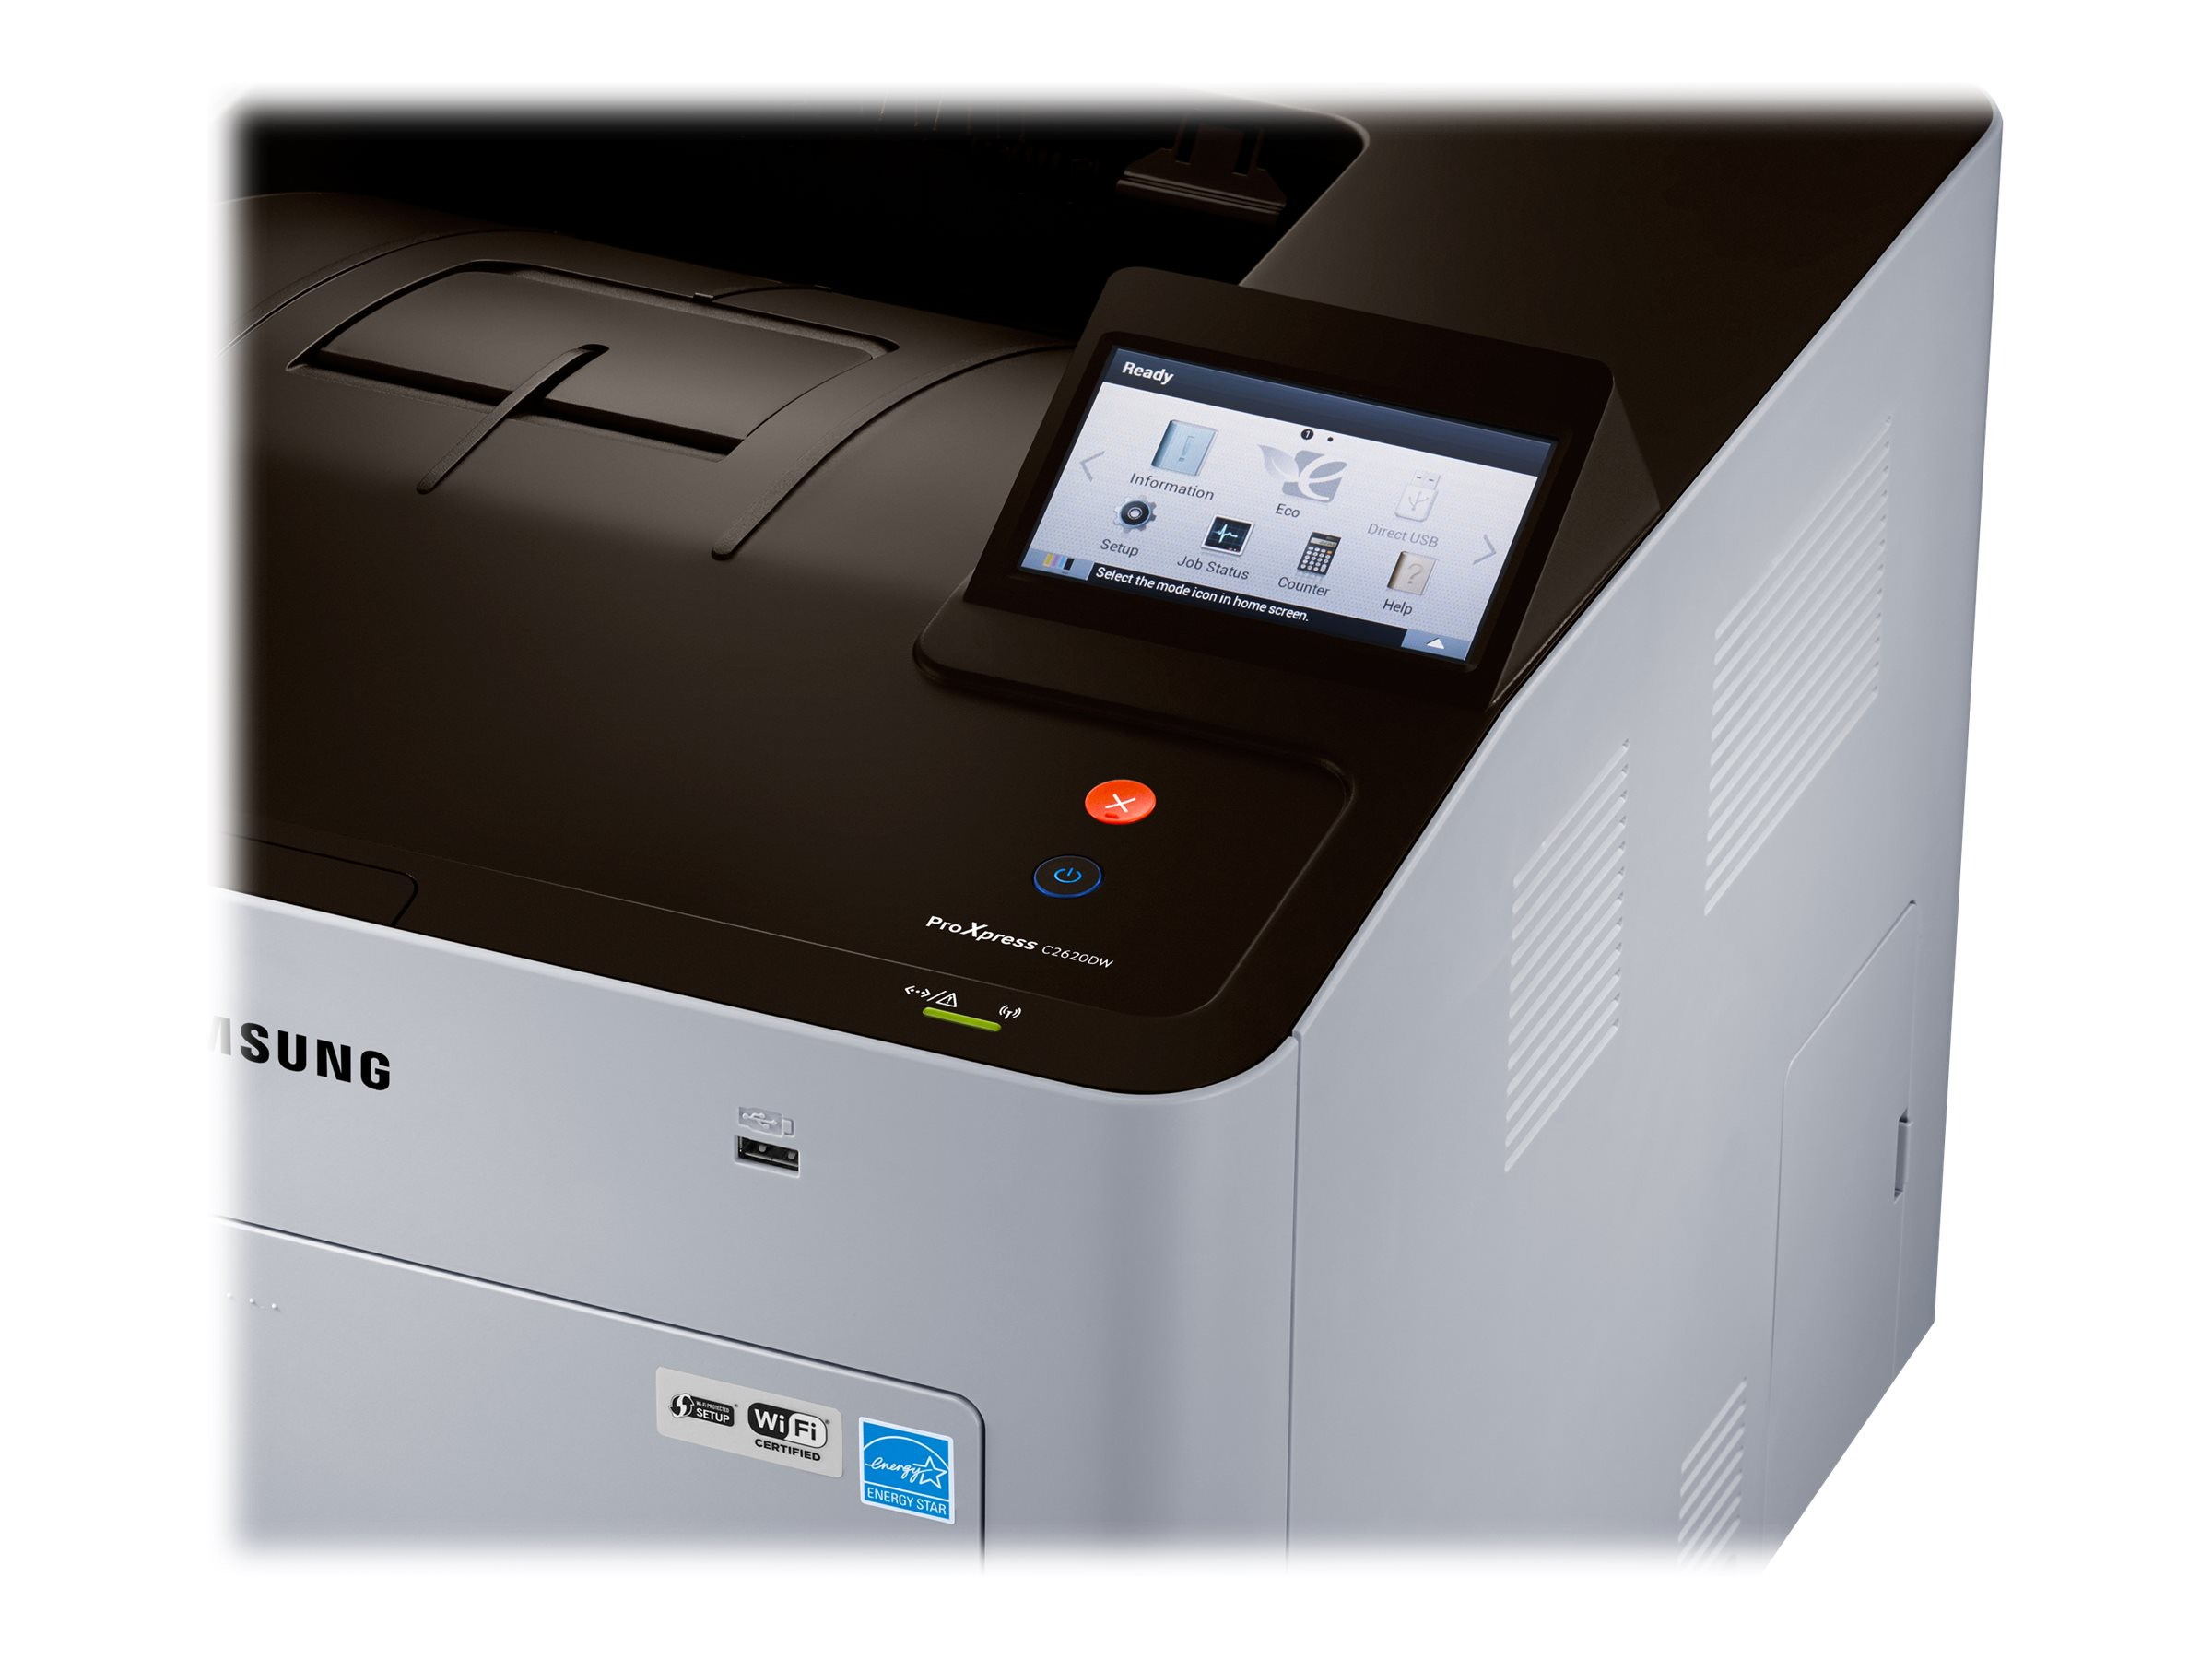 Samsung ProXpress C2620DW Color Laser Printer, SL-C2620DW/XAA